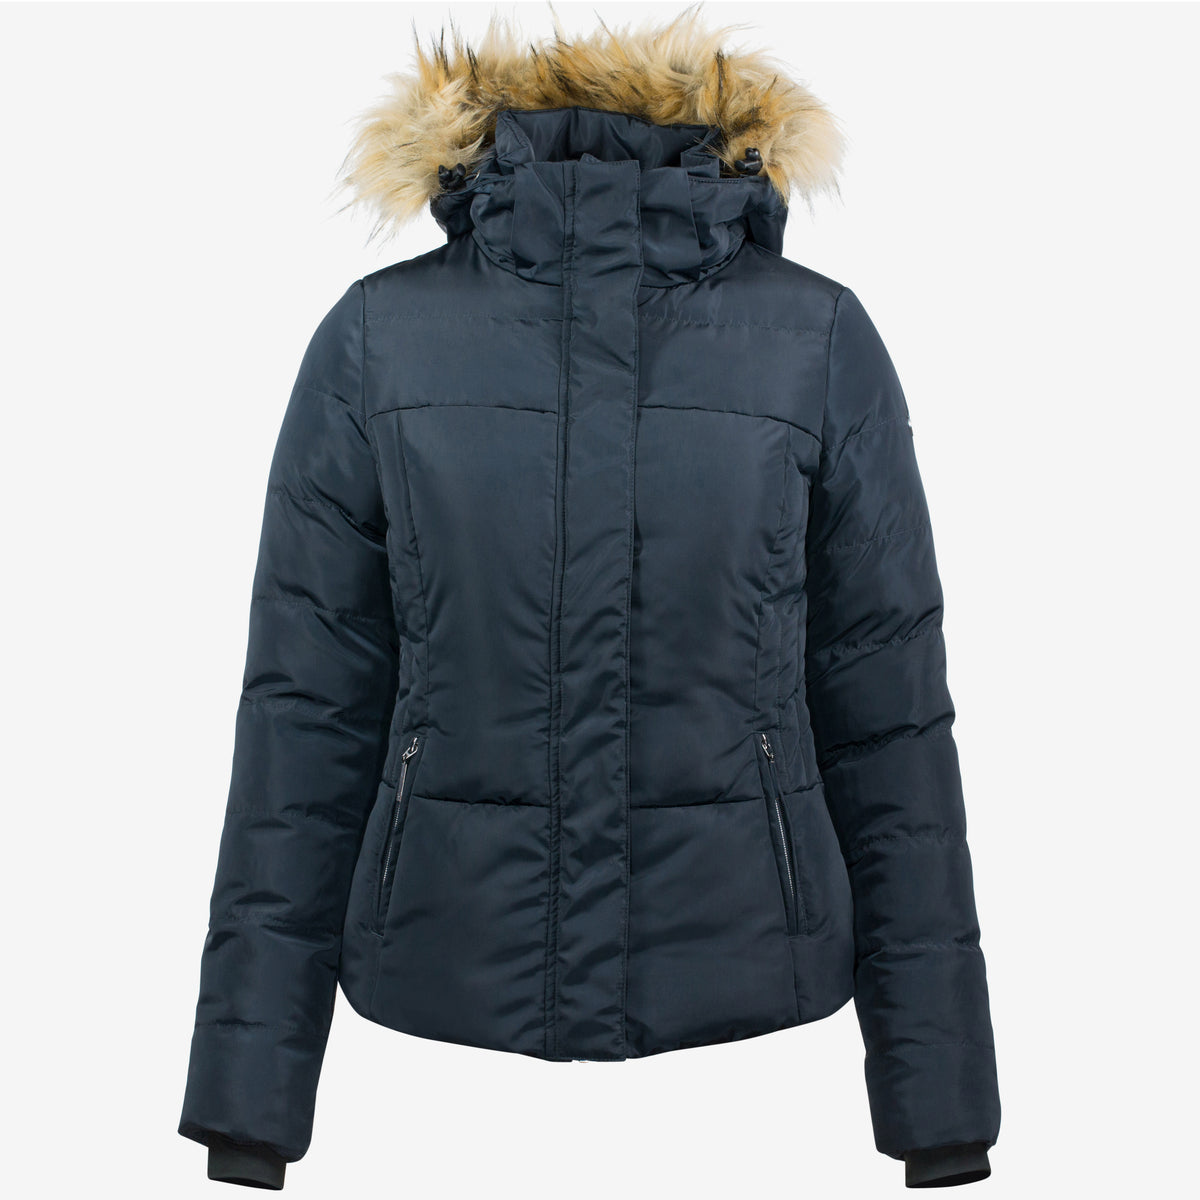 Photo of Horze Camilla Jacket in Navy Blue